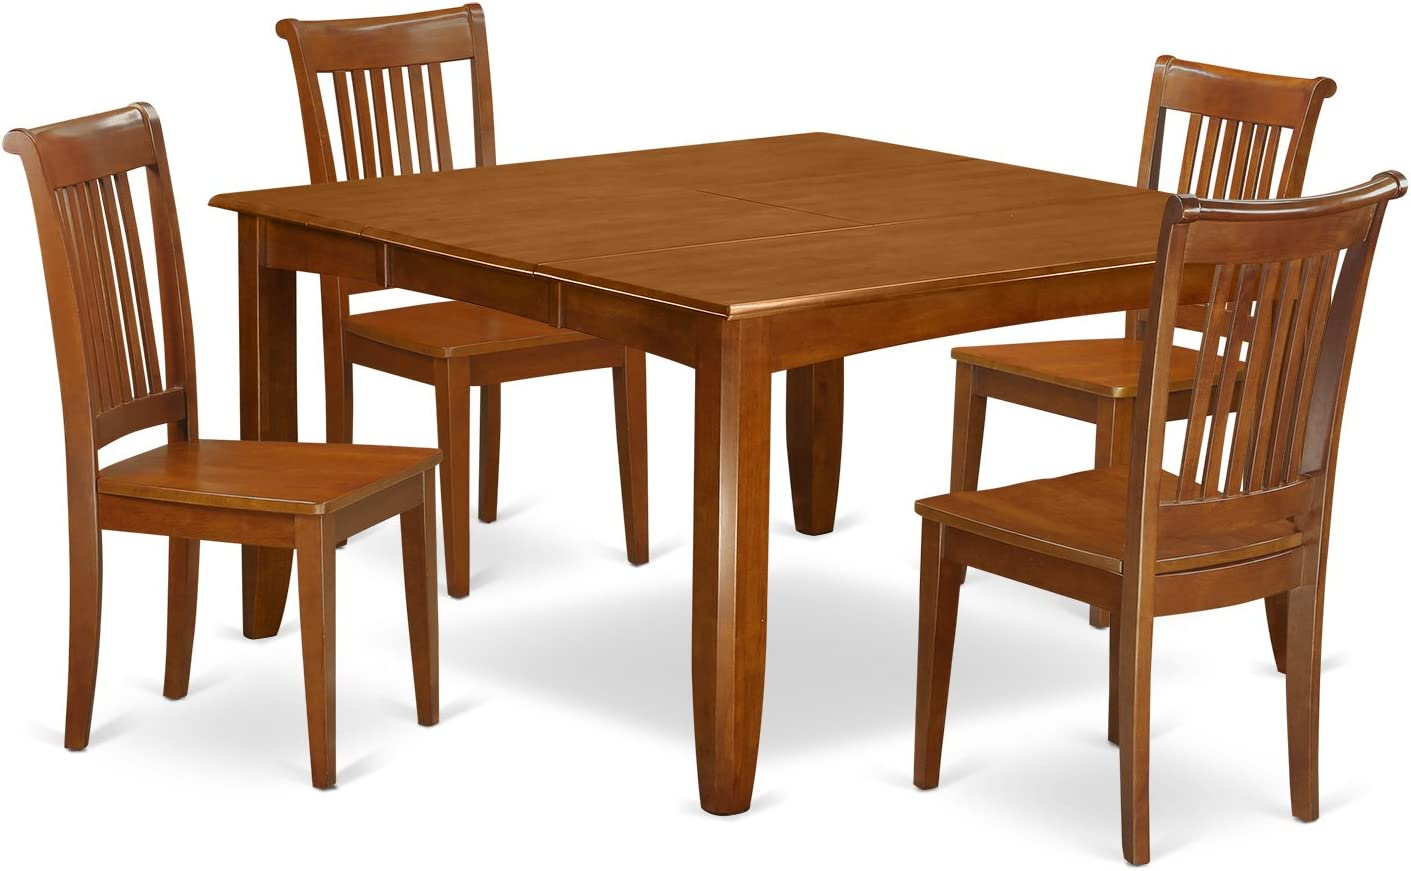 PFPO5-SBR-W 5 Pc Dining room set-Square gathering Table with Leaf and 4 Dining Chairs